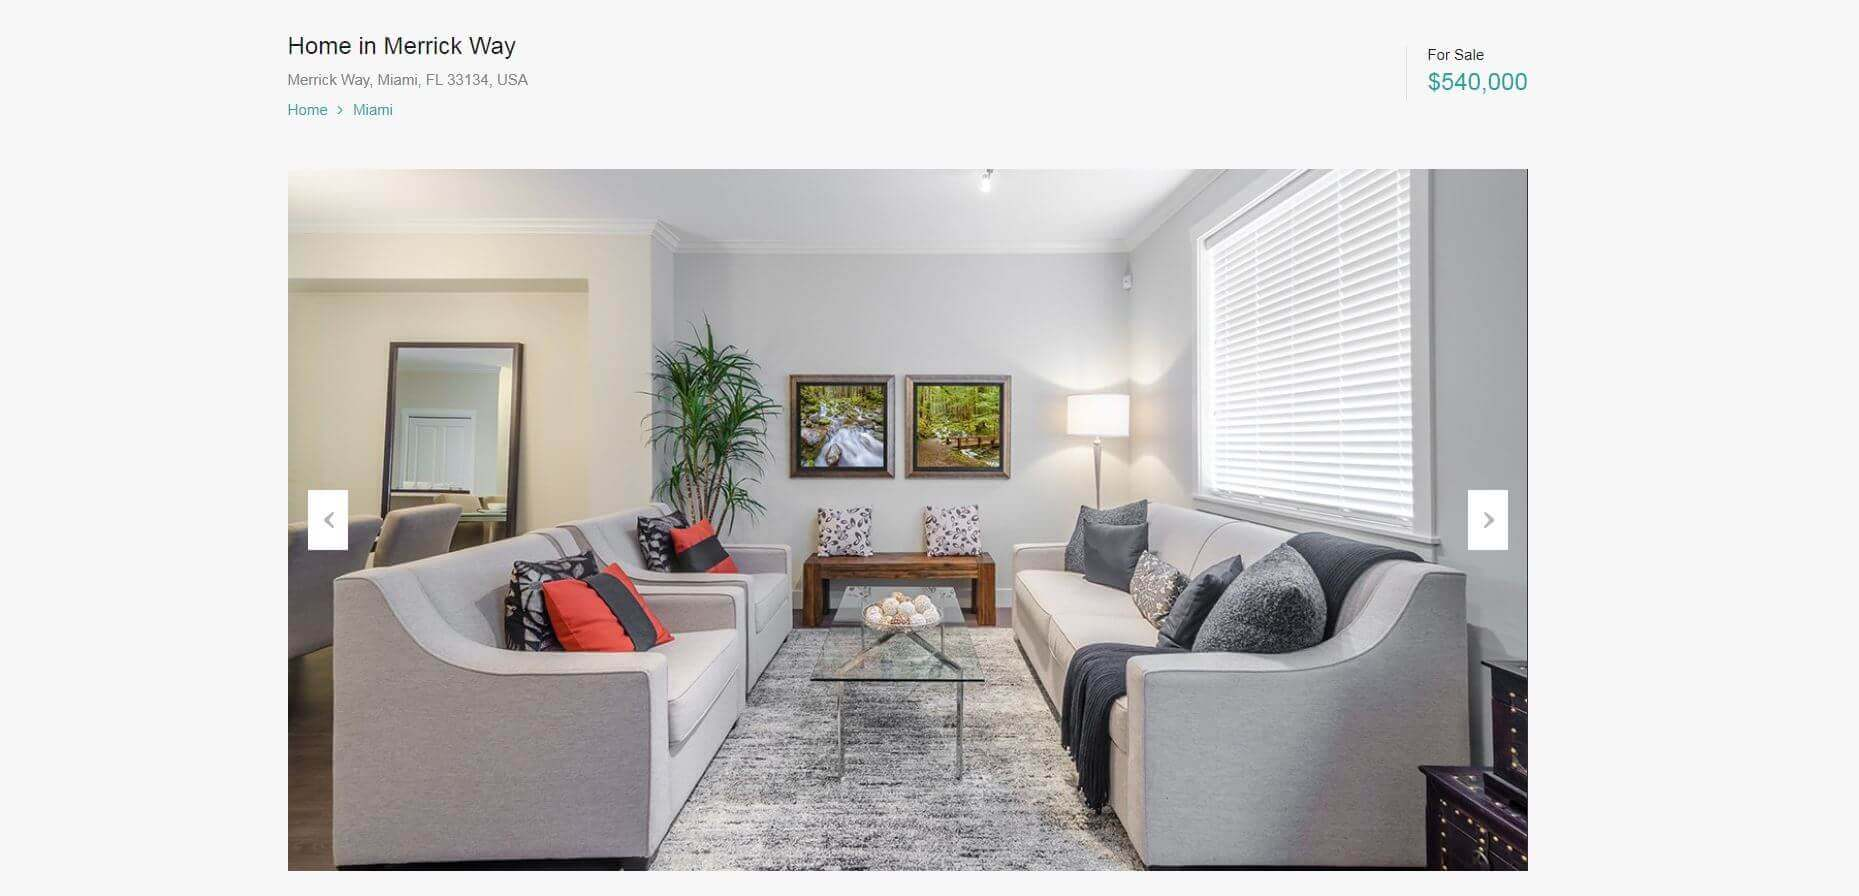 Real Estate Website Property Pages